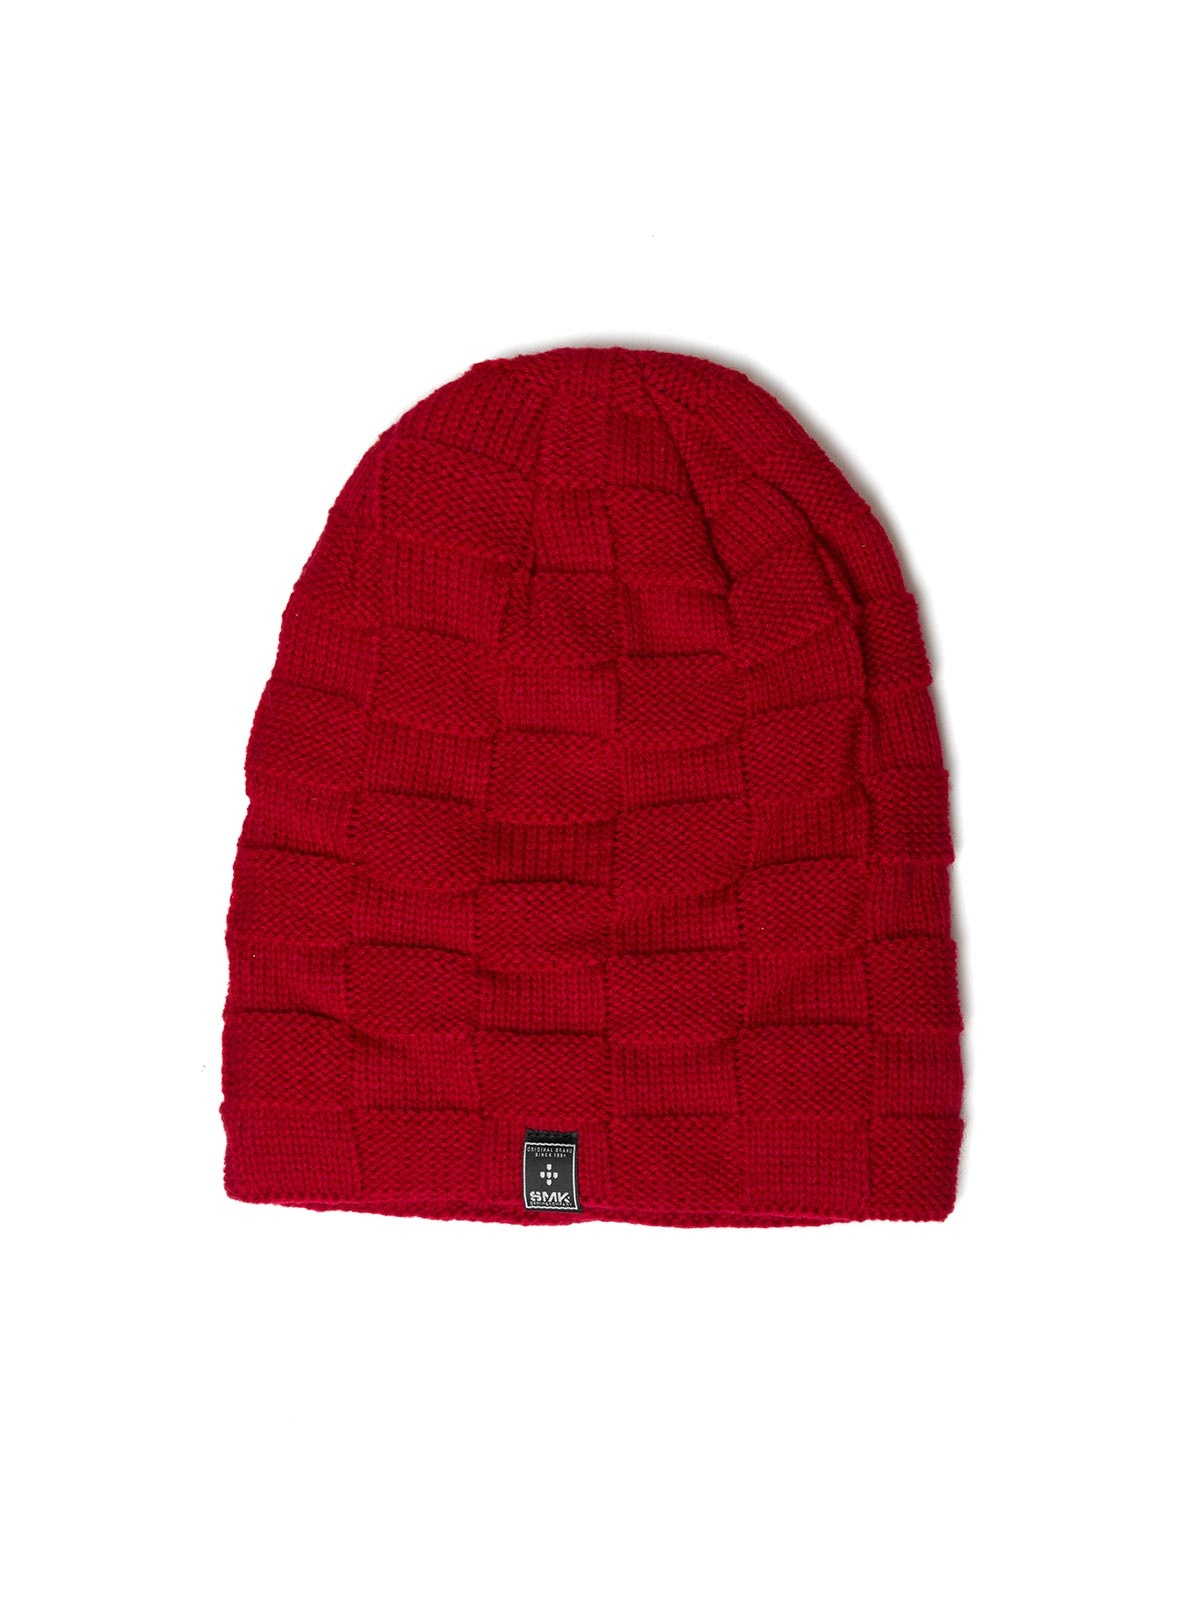 SMK DENIM CO. - GORRO COMPRIDO LISO 92a713d181d